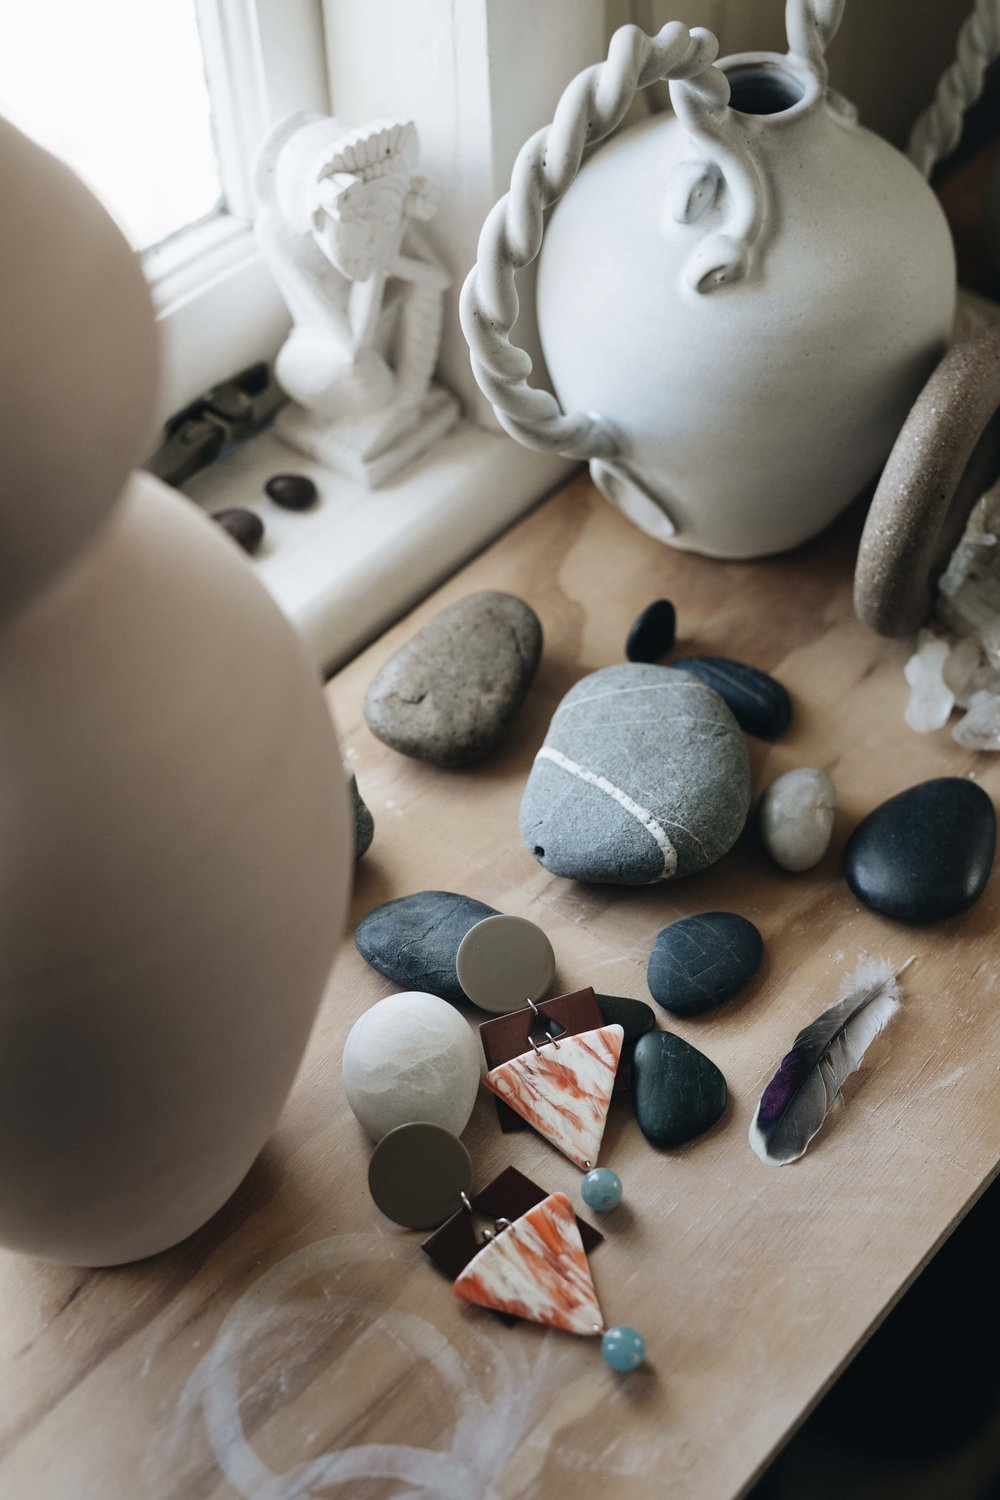 The Cleopatra Earrings in Tan sitting amongst found objects and ceramics in Nicolette's studio